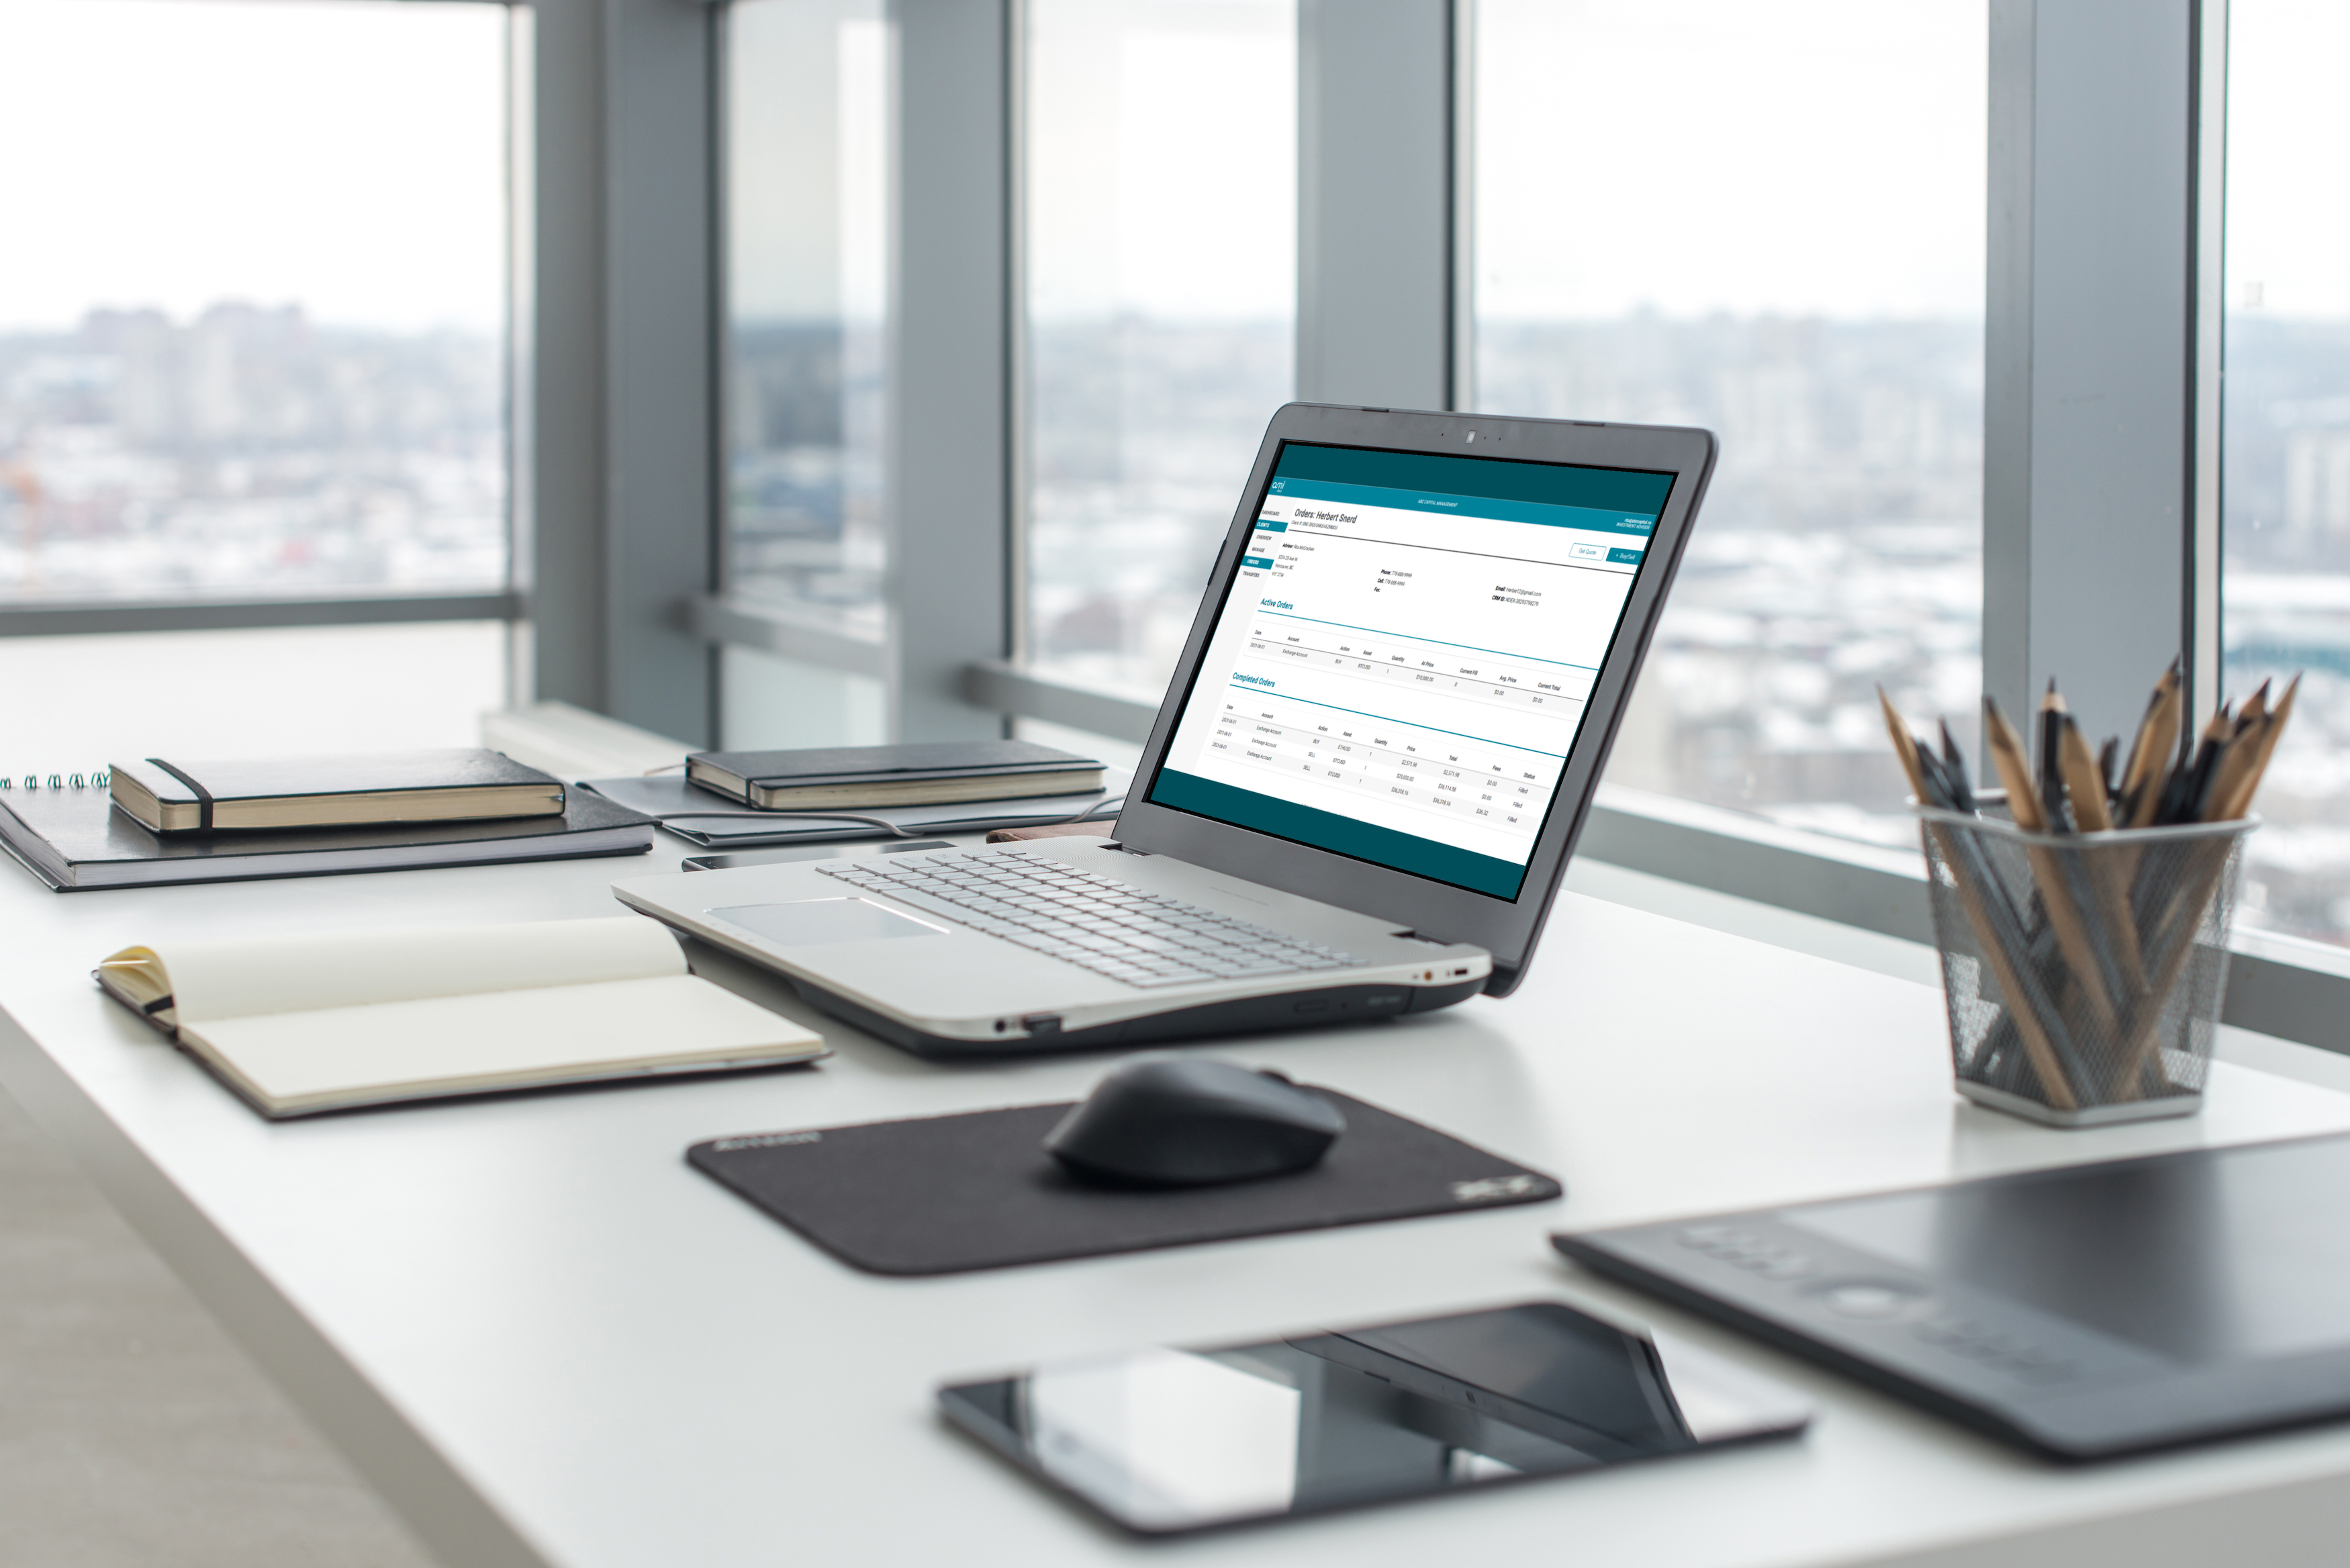 A laptop open on a desk showing a balance sheet inside the AmiPro software.